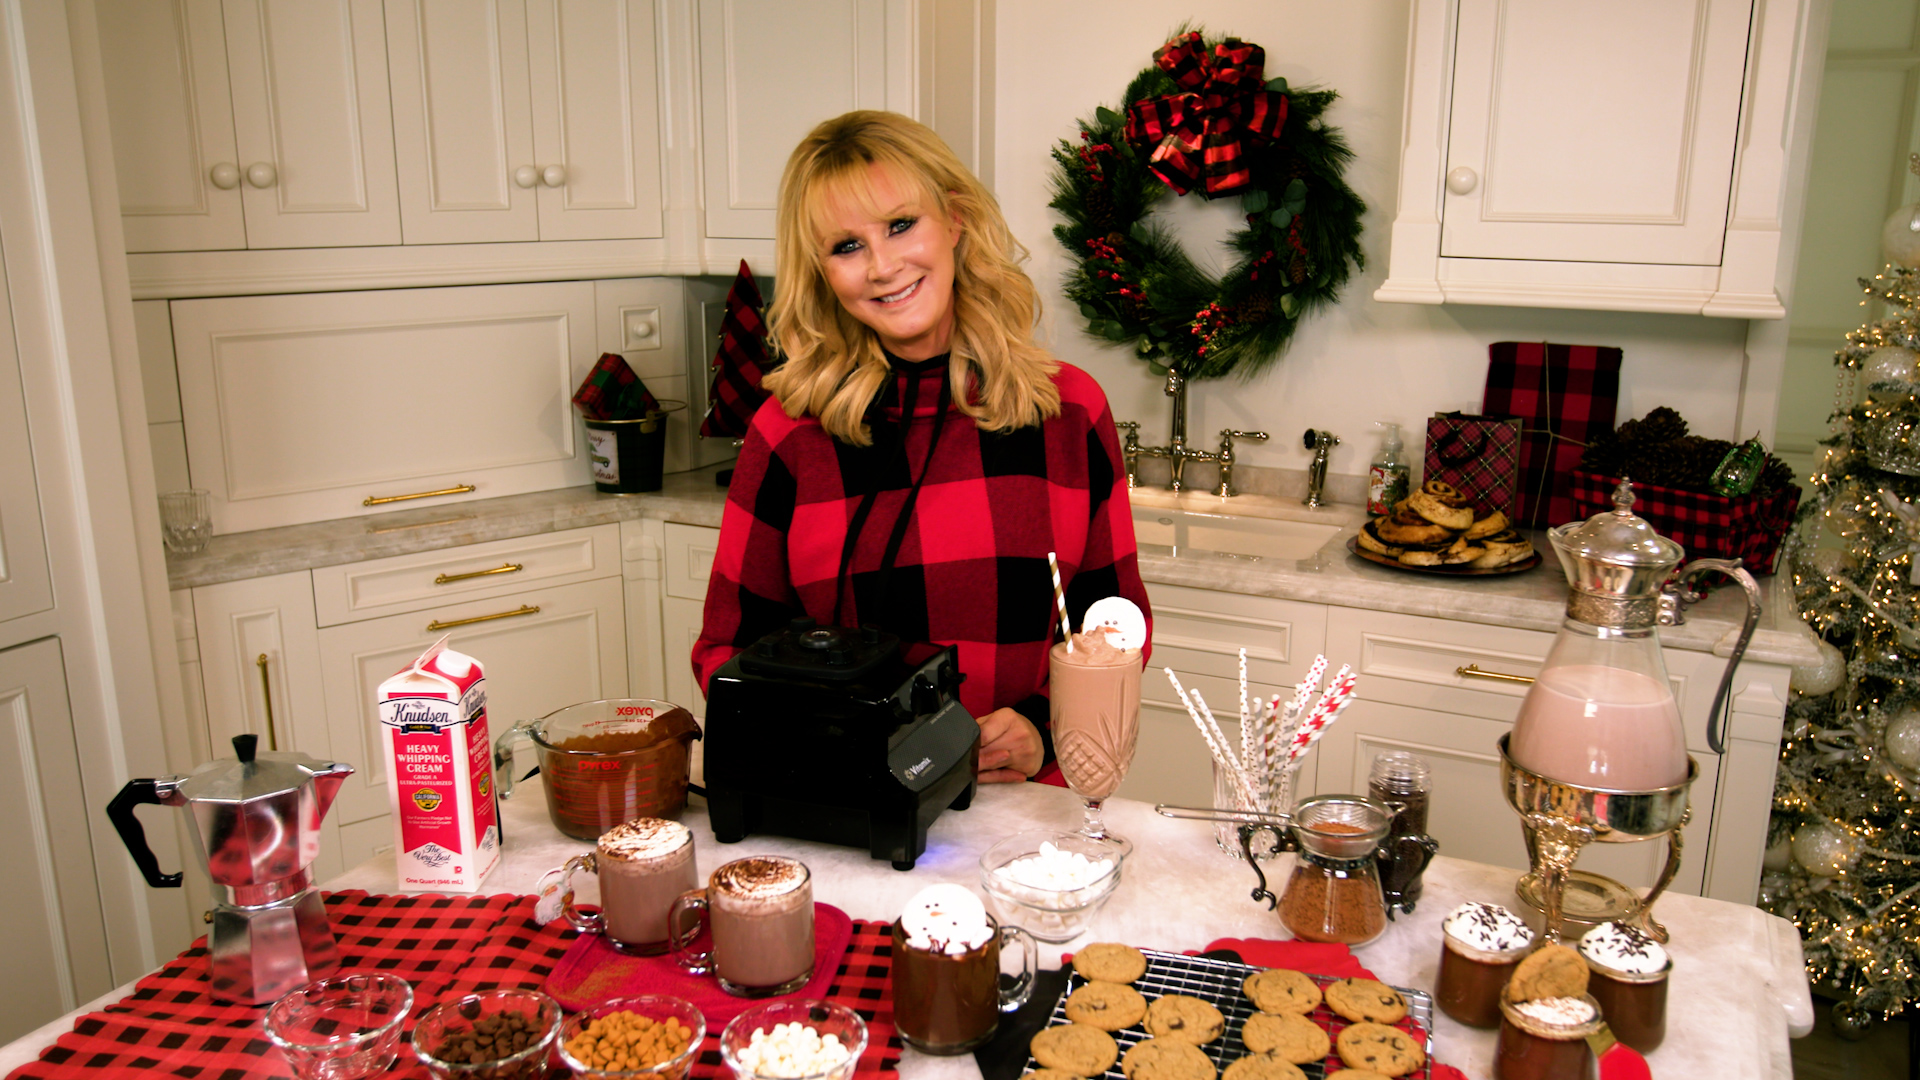 Chef Sandra Lee's secrets to hosting a dazzling holiday dinner